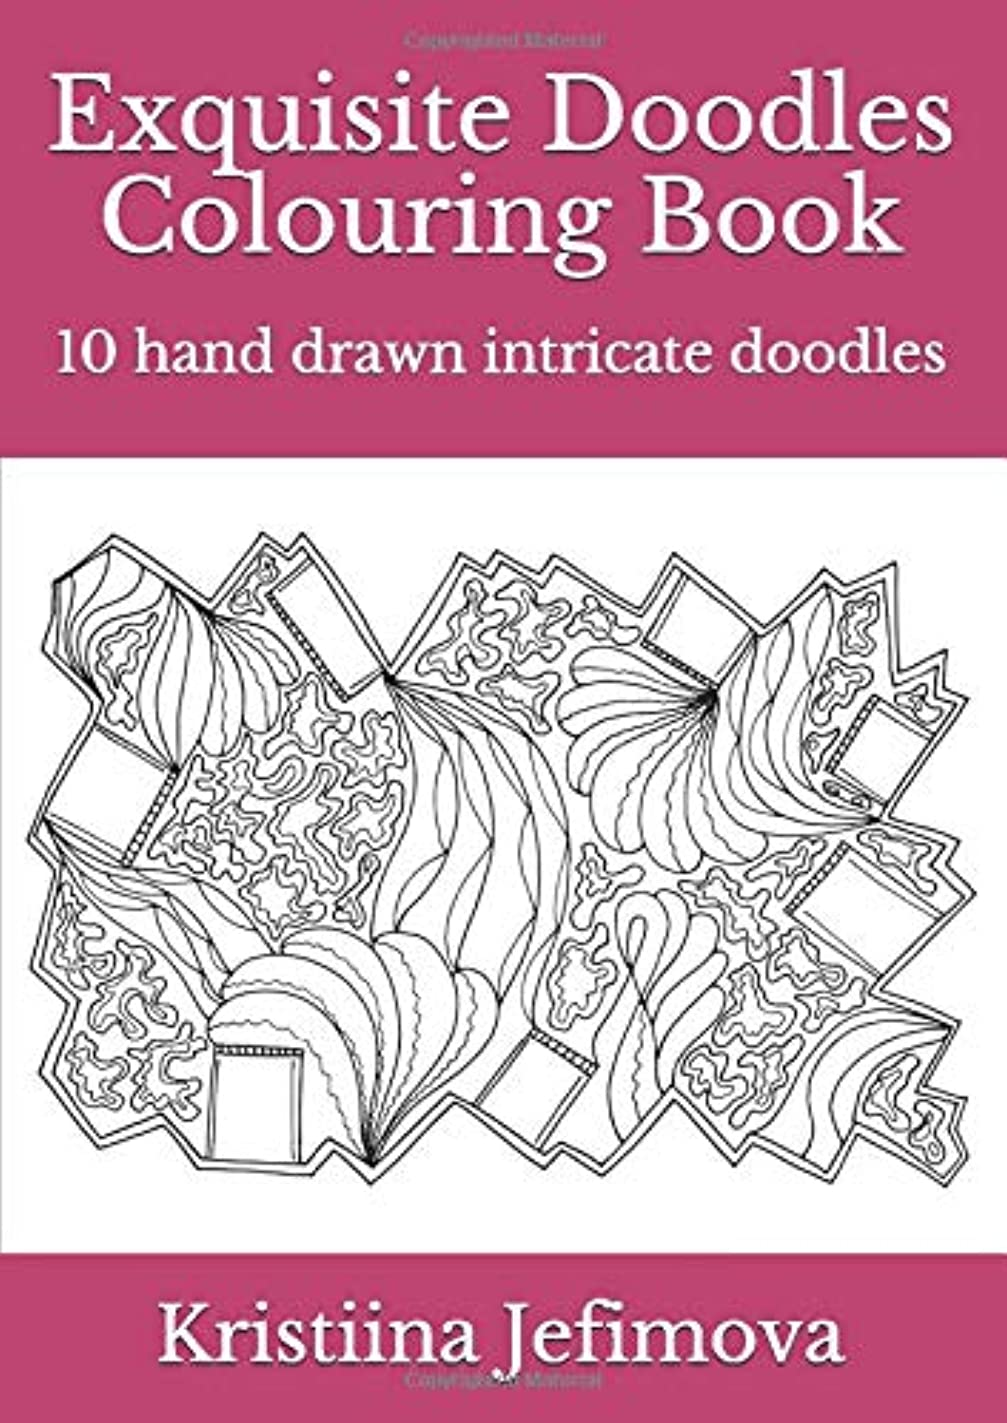 慈善ベンチャー寝室Exquisite Doodles Colouring Book: 10 hand drawn intricate doodles